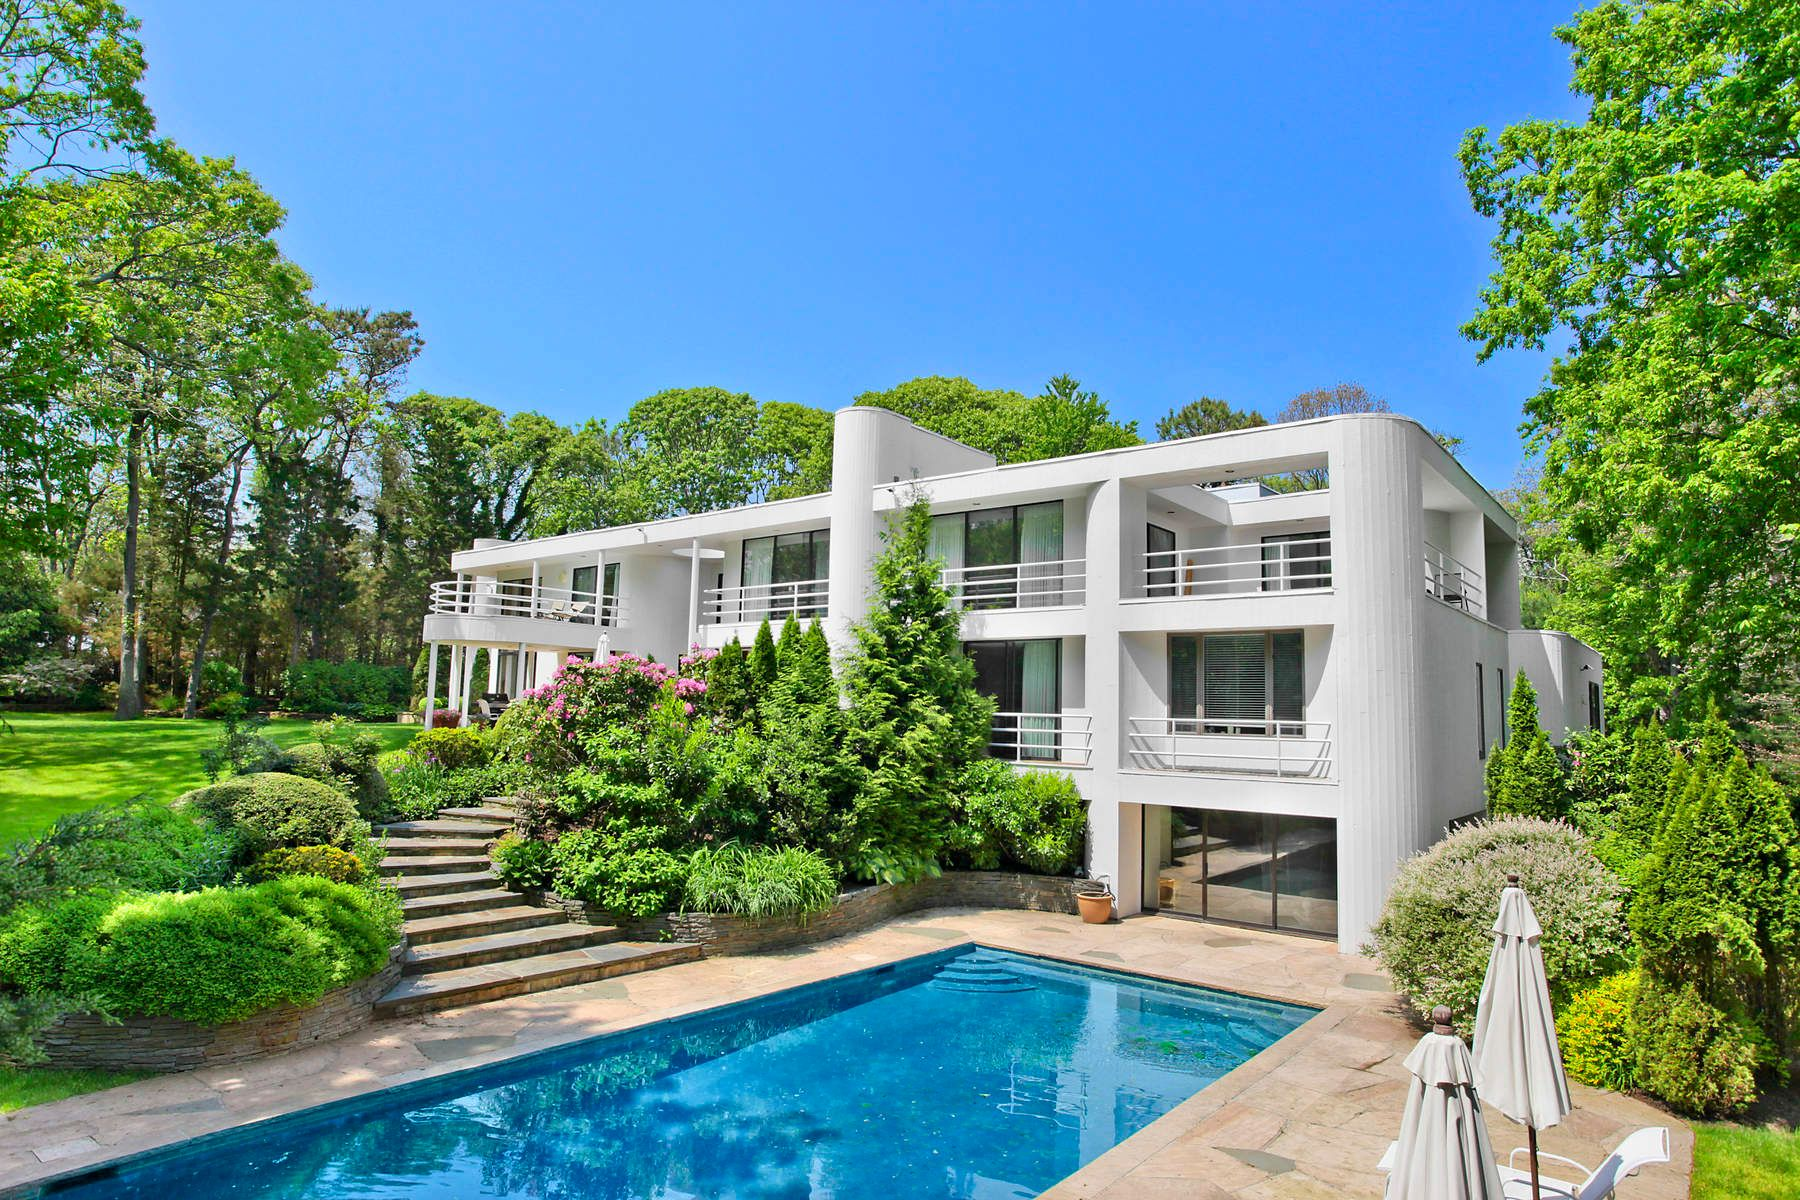 Single Family Home for Rent at Georgica Gem 5 Bailow Lane East Hampton, New York 11937 United States